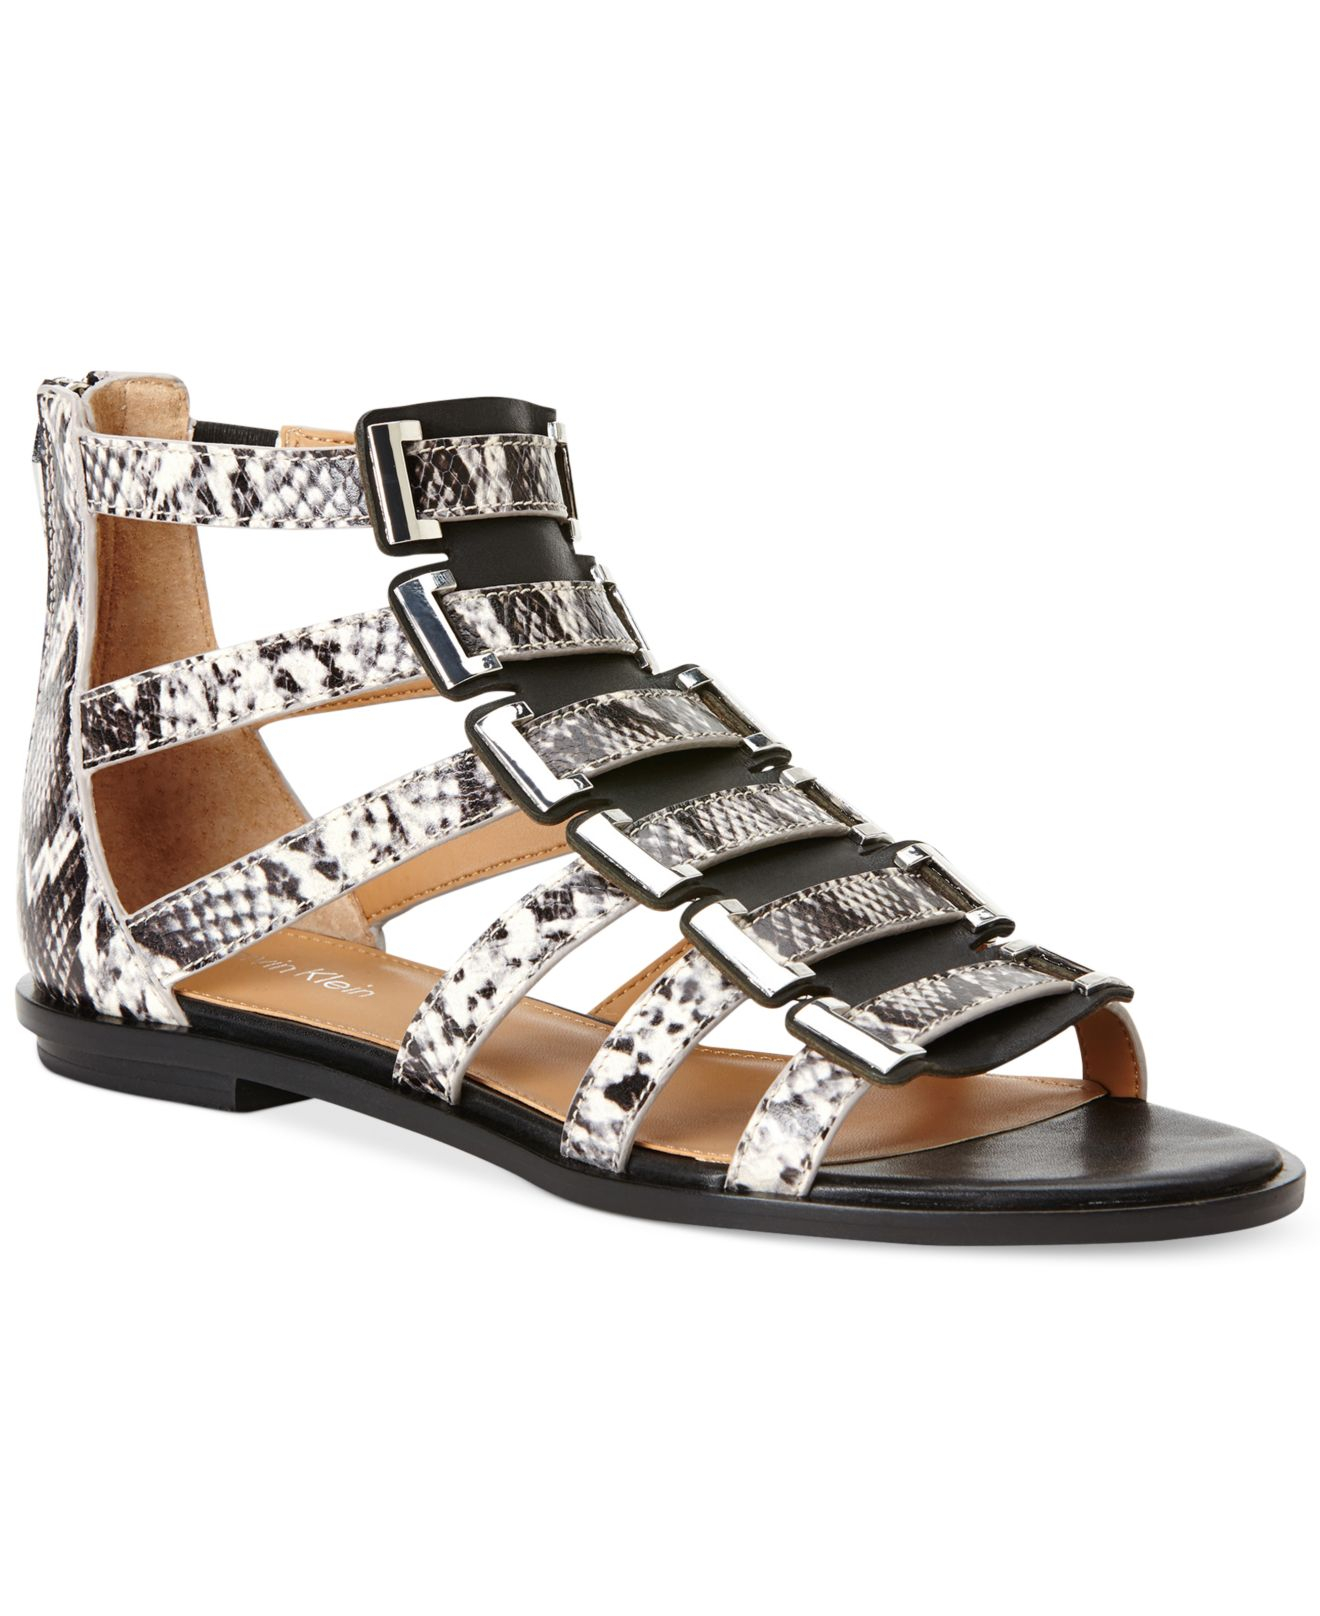 dcdf8ec1a Gallery. Previously sold at  Macy s · Women s Gladiator Sandals ...